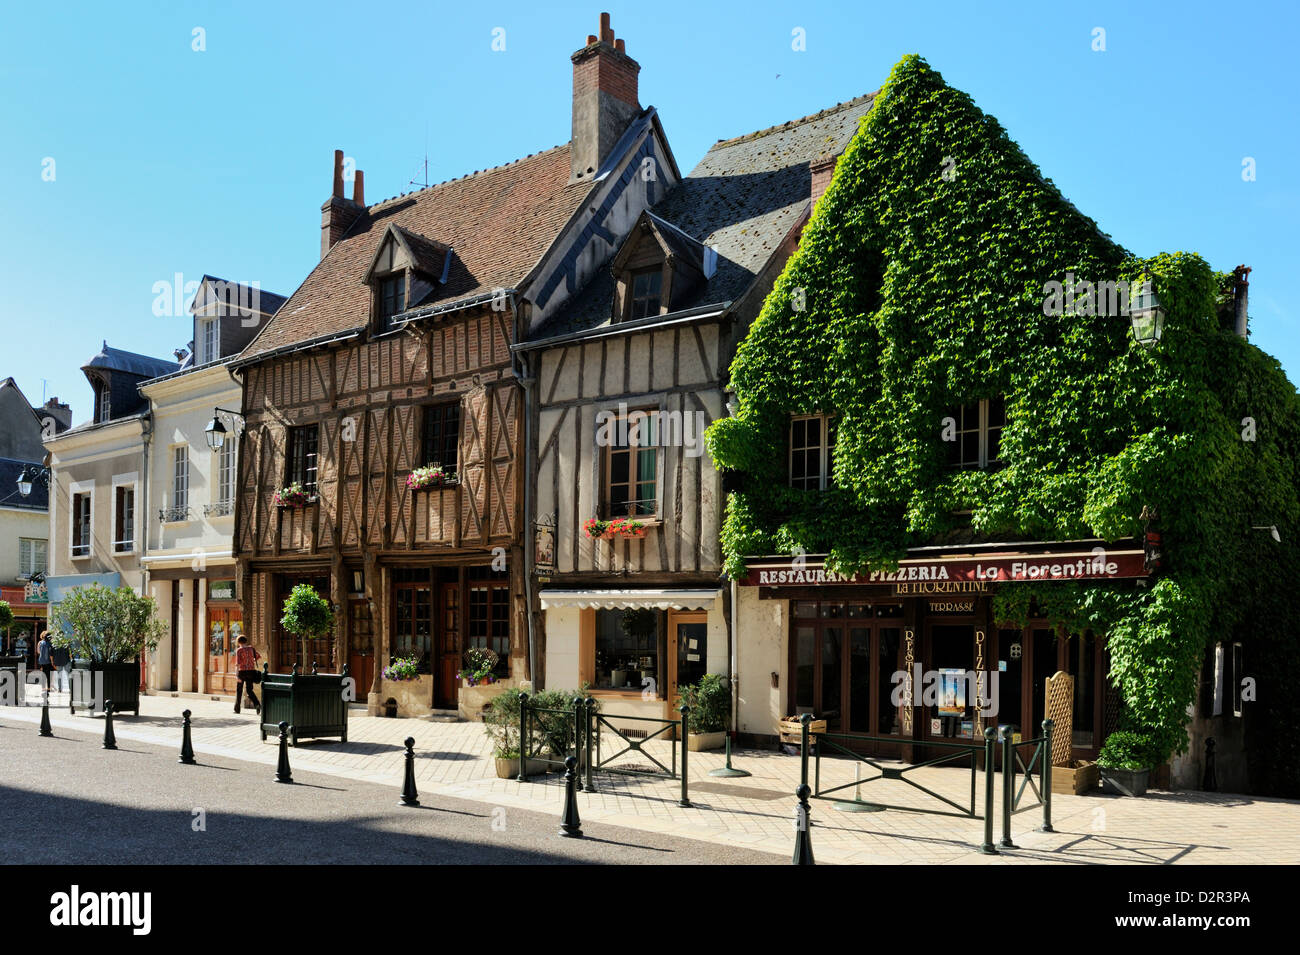 Medieval half-timbered buildings, Amboise, UNESCO World Heritage Site, Indre-et-Loire, Centre, France, Europe - Stock Image